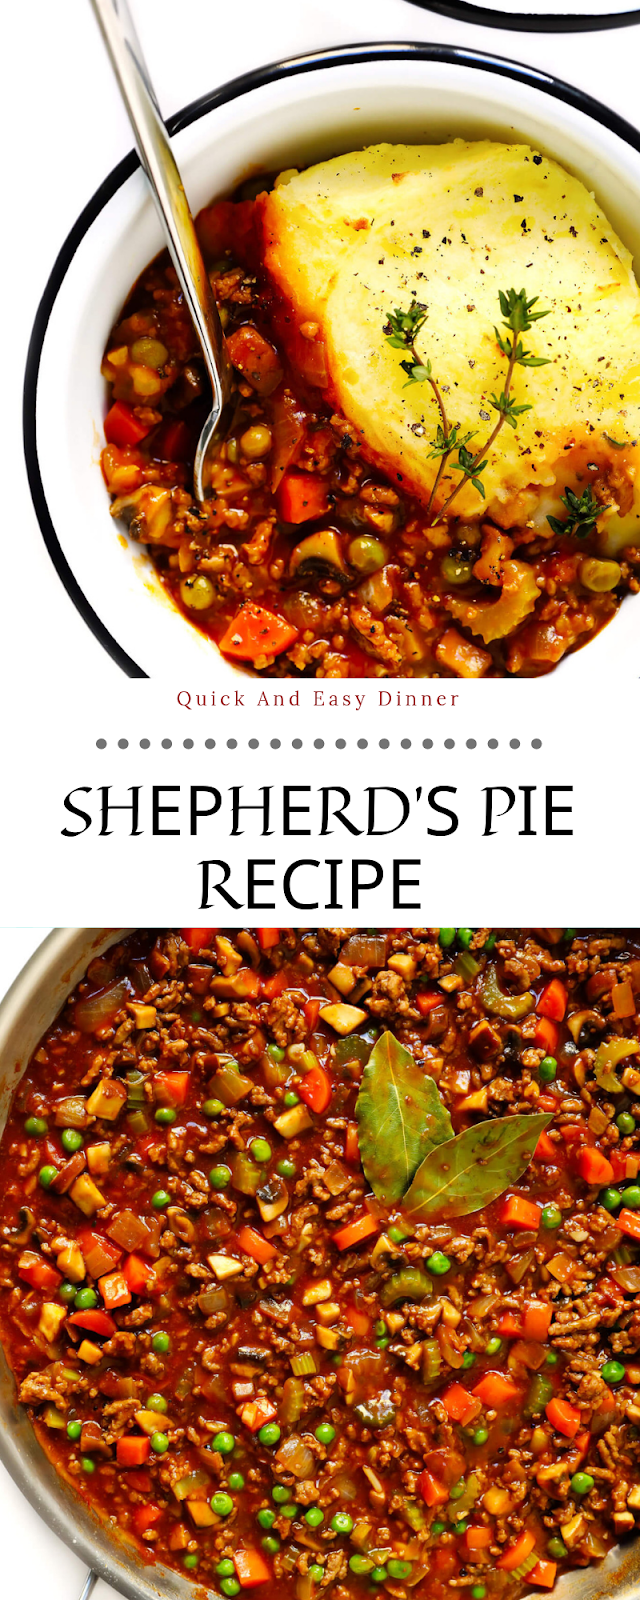 Quick And Easy Dinner | Shерhеrd'ѕ Pіе Rесіре #chickenbreastrecipeseasy